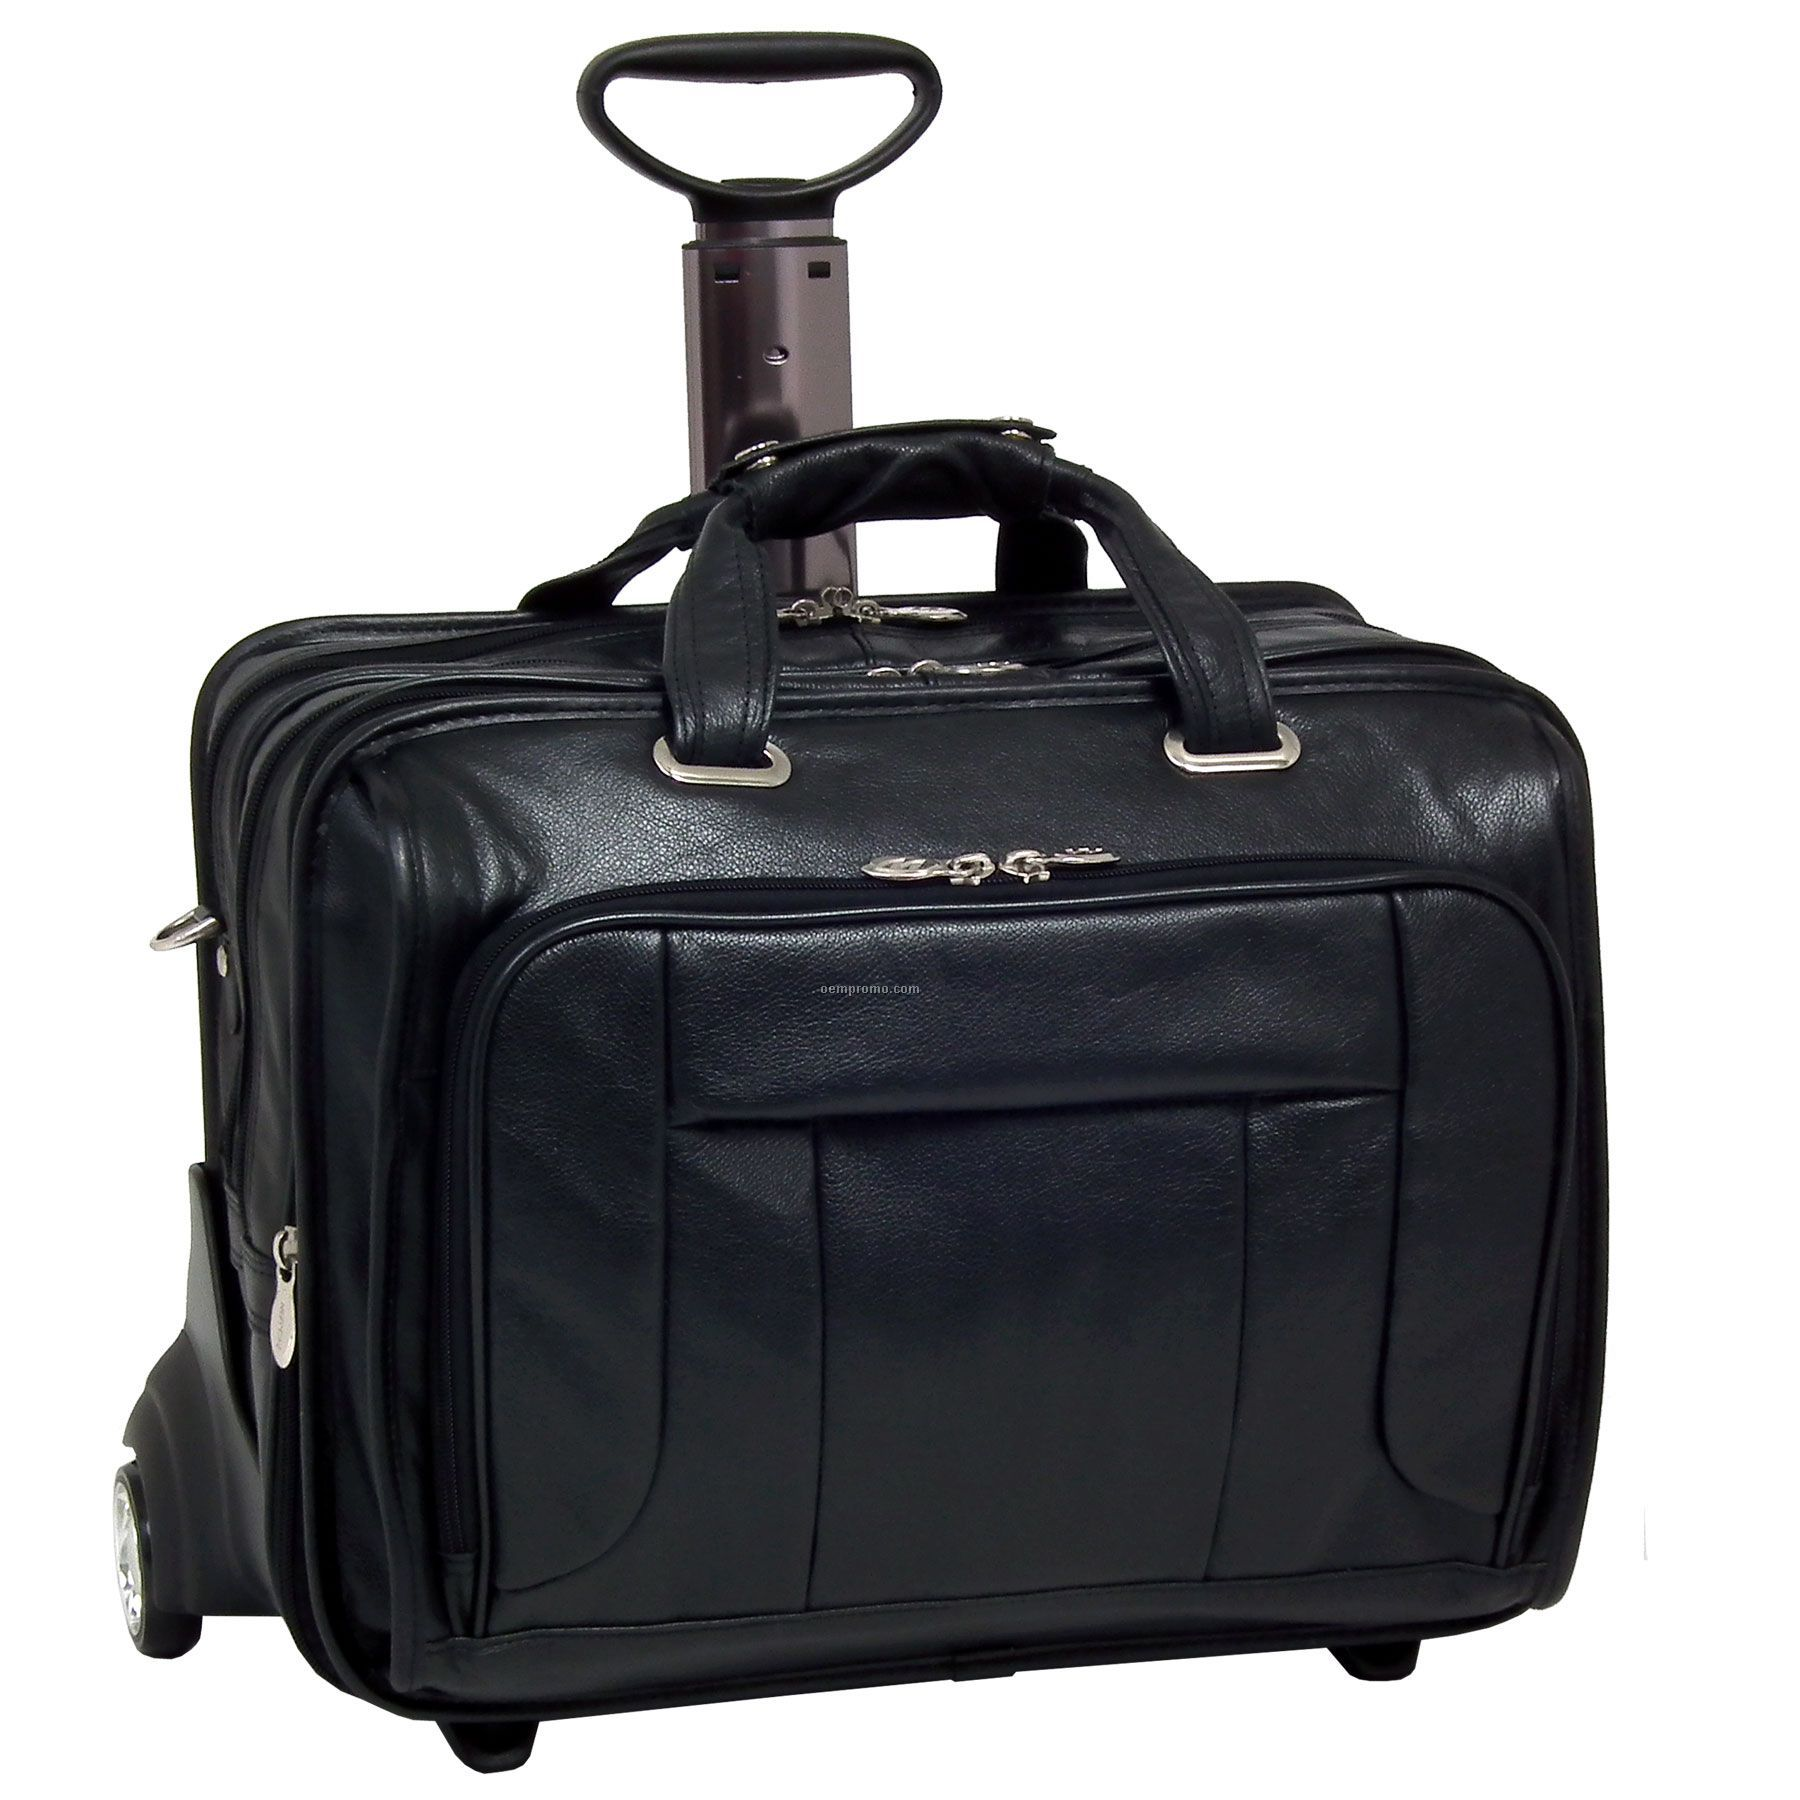 "West Town Leather Checkpoint Friendly 17"" Wheeled Laptop Case - Black"